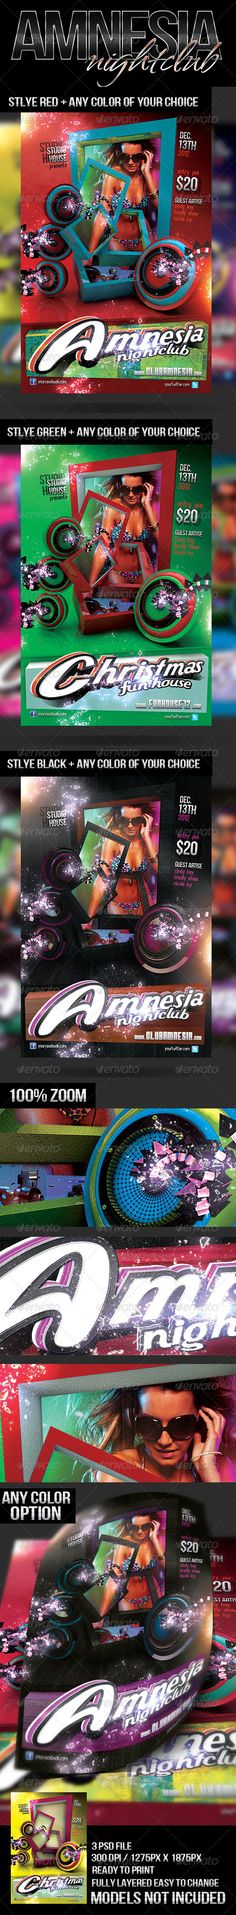 Amnesia Nightclub    #GraphicRiver         Amnesia Nightclub  	 Fully Layered / Easy to Adjust / Print Ready 1275PX x 1875PX – 300DPI – CMYK fonts use are listed in help file available in download  	 Image used can be found here: sexy blonde dj girl – photodune /item/sexy-blonde-dj-girl/2649020?WT.ac=category_thumb&WT.seg_1=category_thumb&WT.z_author=stryjek  	  Party Flyers  	 One Love        	 One Love      One Heart       5 Stars  Created: 12November12 GraphicsFilesIncluded: PhotoshopPSD…